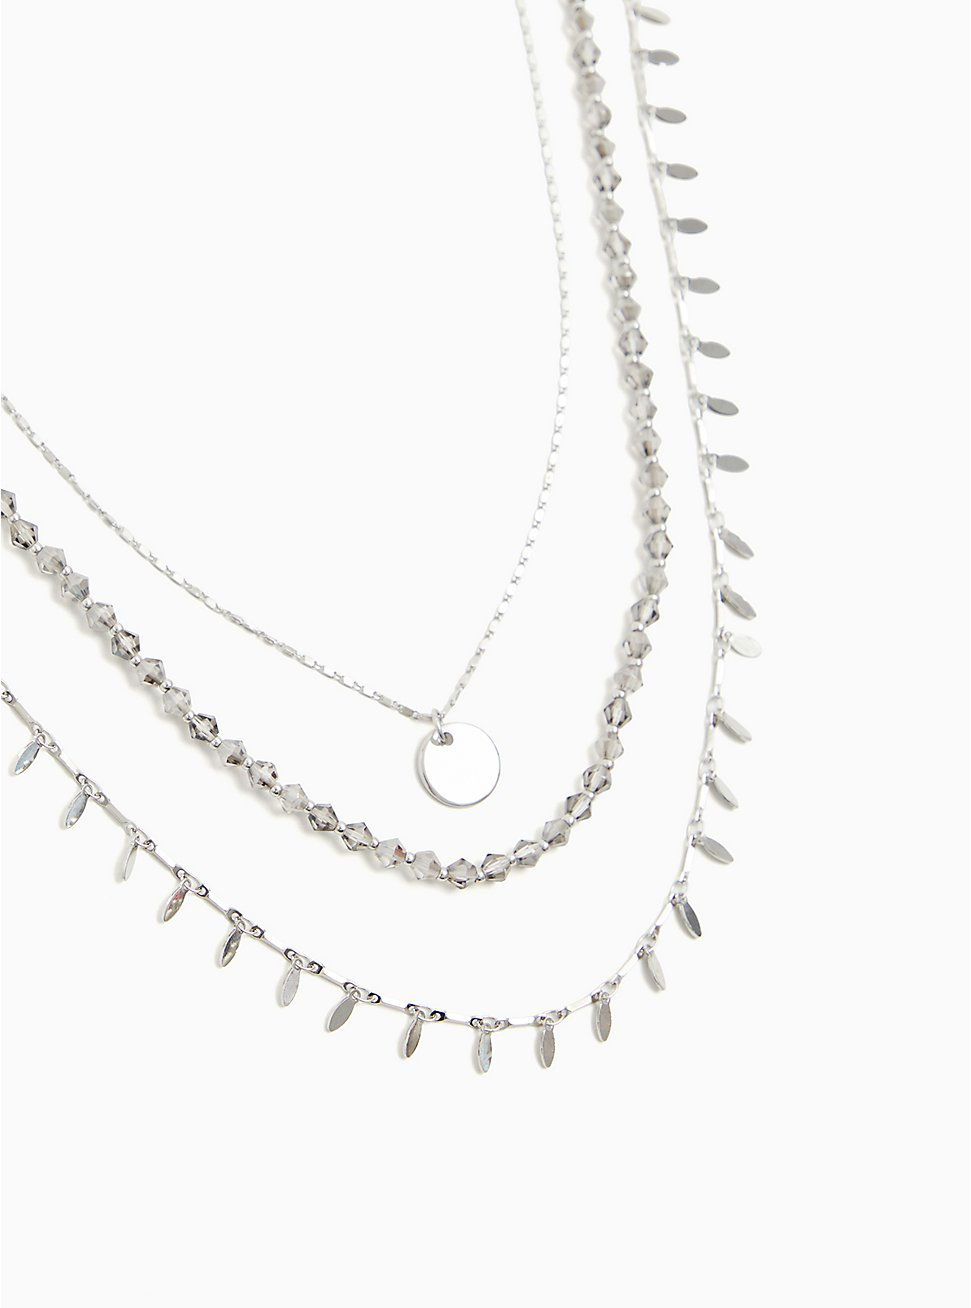 Plus Size Silver-Tone Coin Layered Necklace, , hi-res